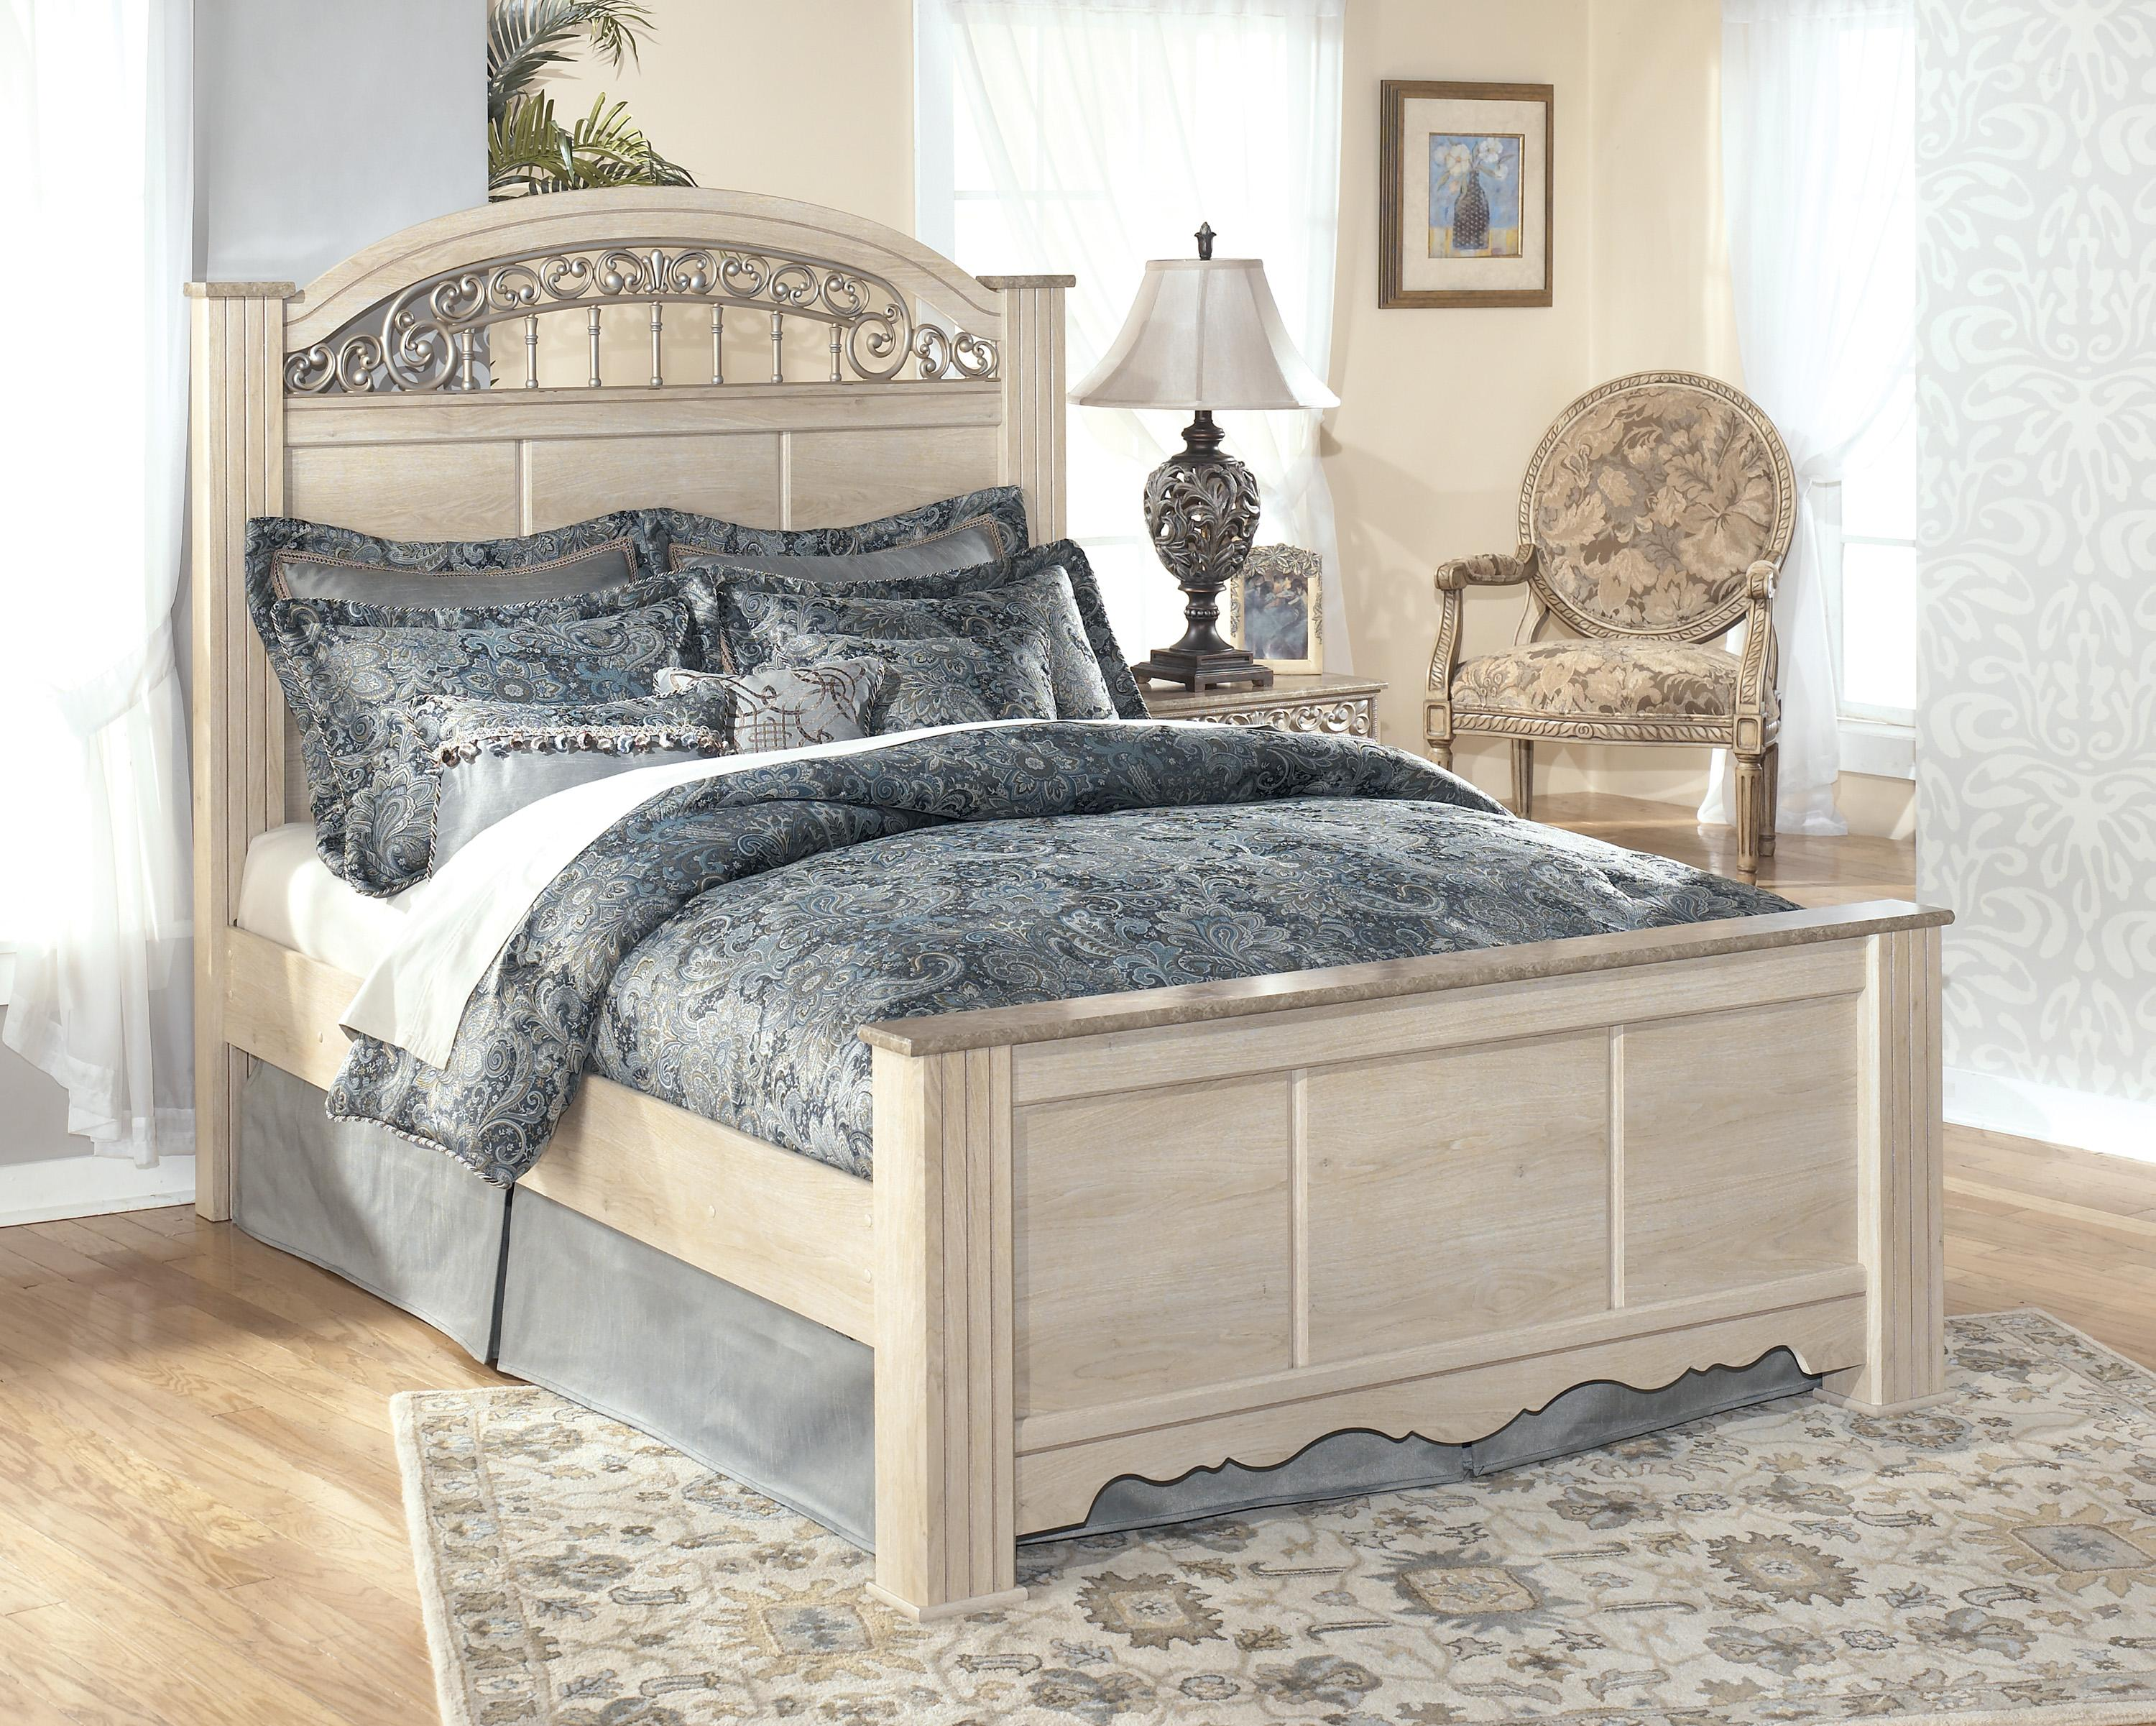 Signature Design by Ashley Catalina King Poster Bed - Item Number: B196-68+66+99